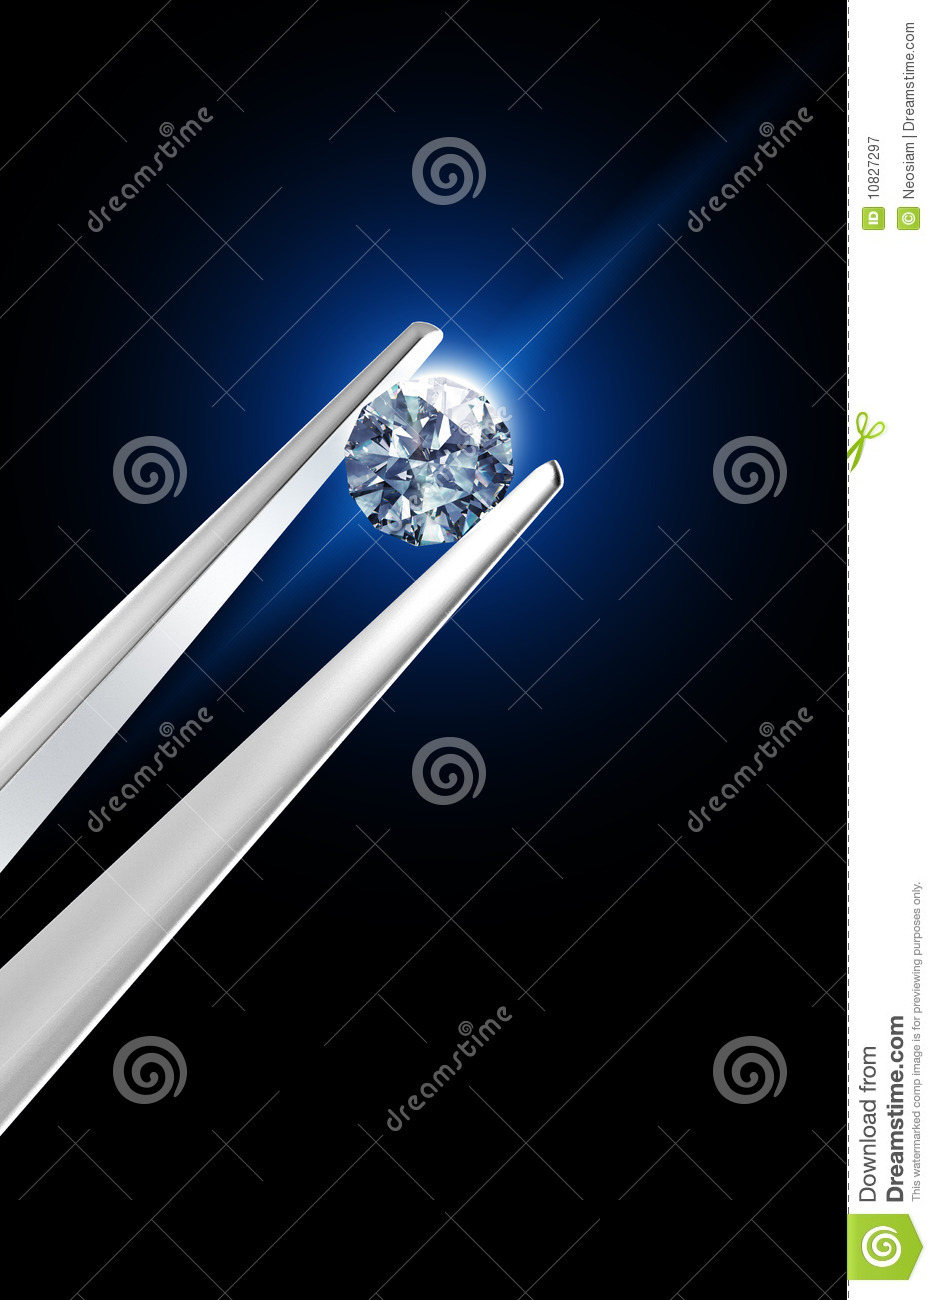 Diamante prendido por tweezers